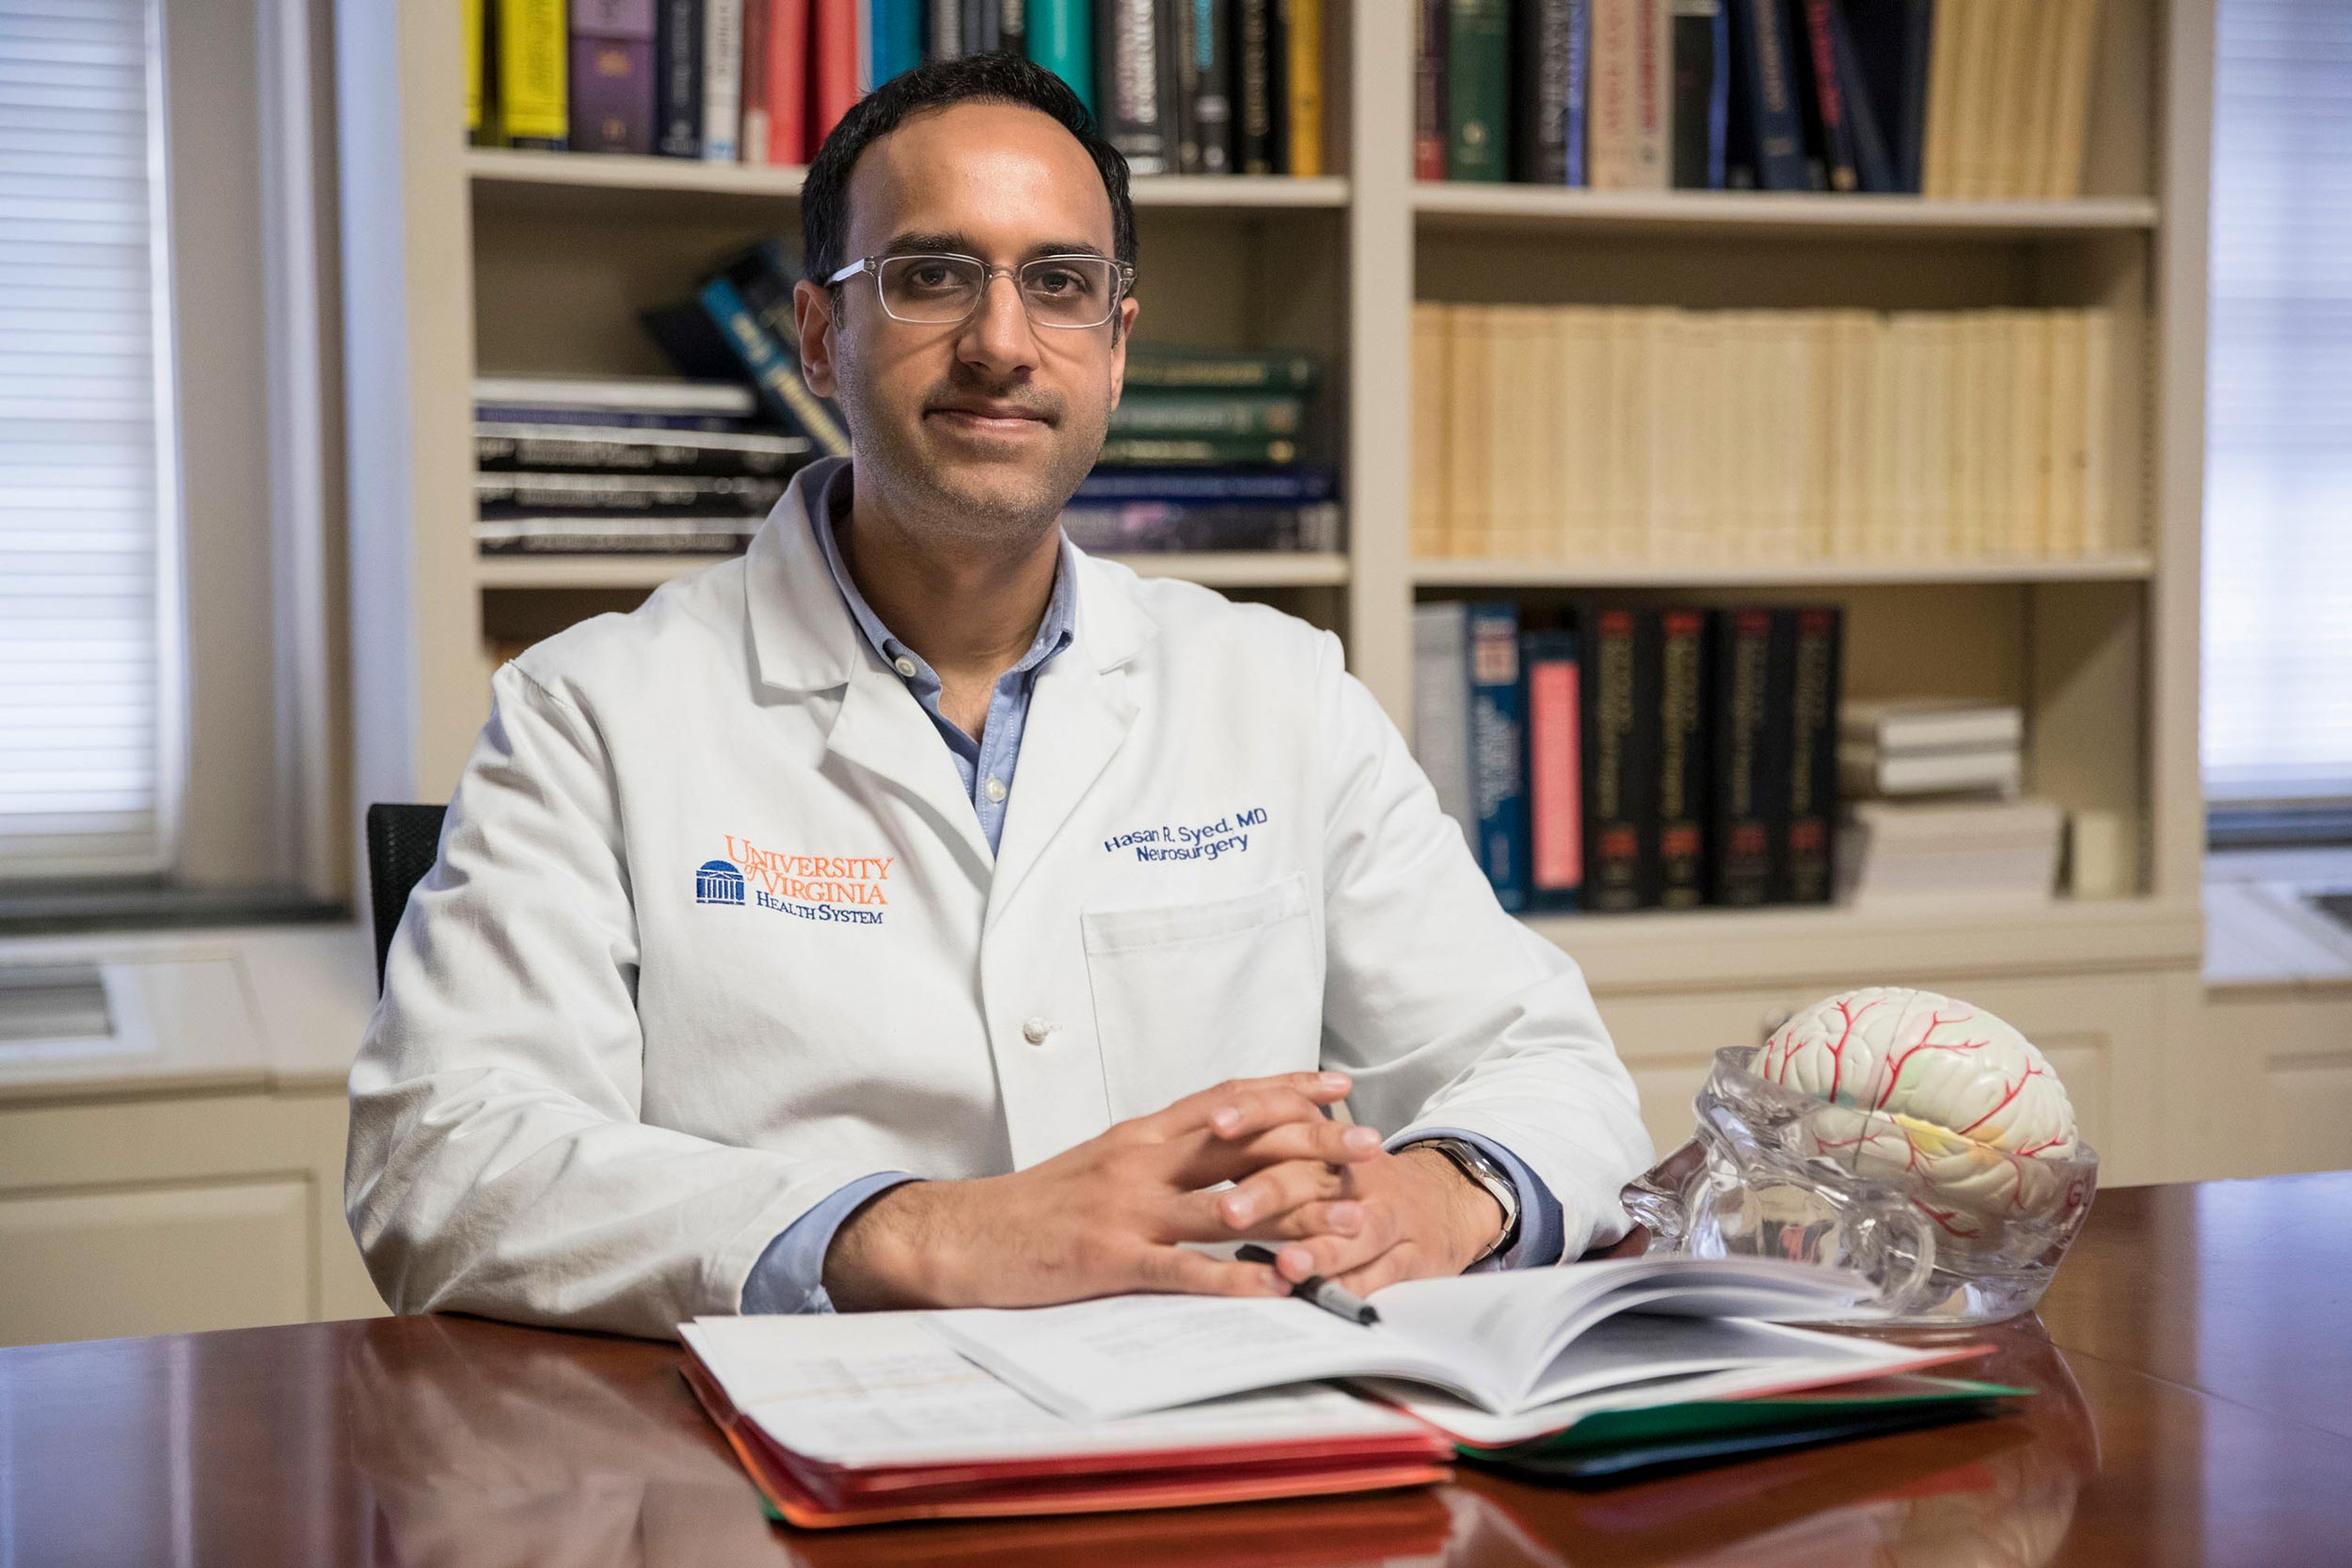 Dr. Hasan Syed co-founded the Global Brainsurgery Initiative to improve the quality of neurosurgery worldwide and educate the next generation of neurosurgeons.